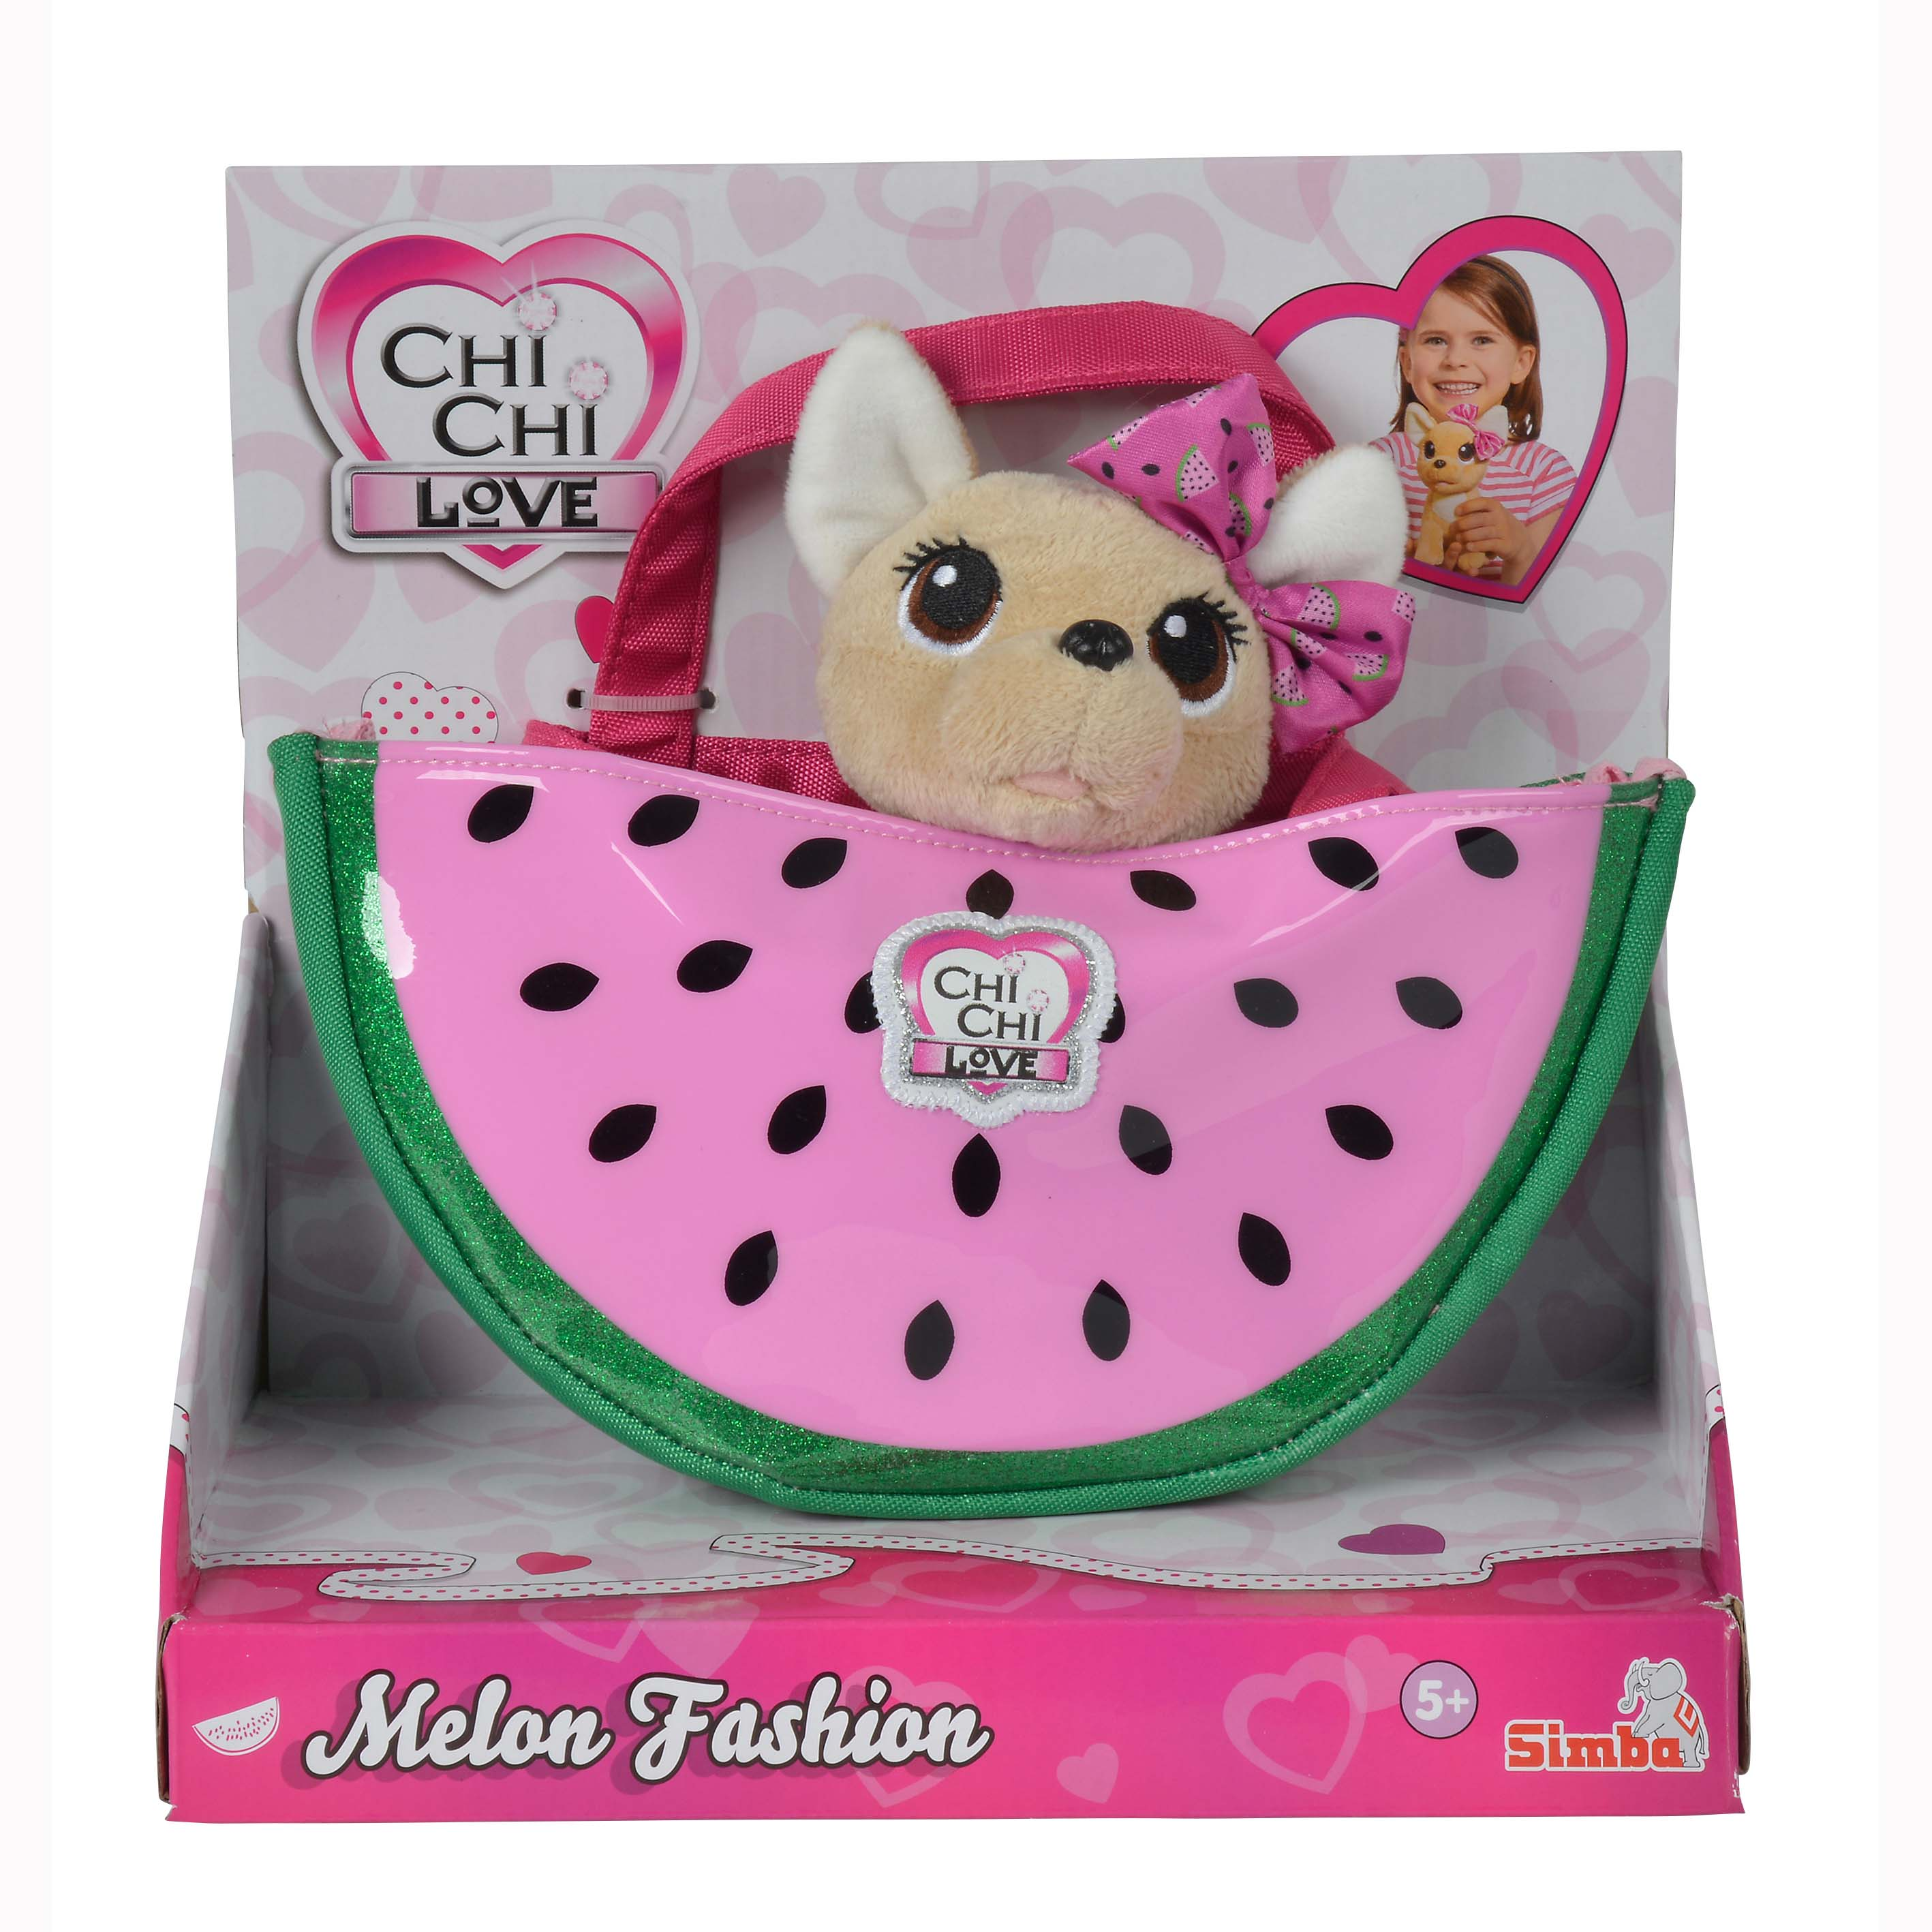 Afbeelding van Chi Chi Love Fruit Fashion